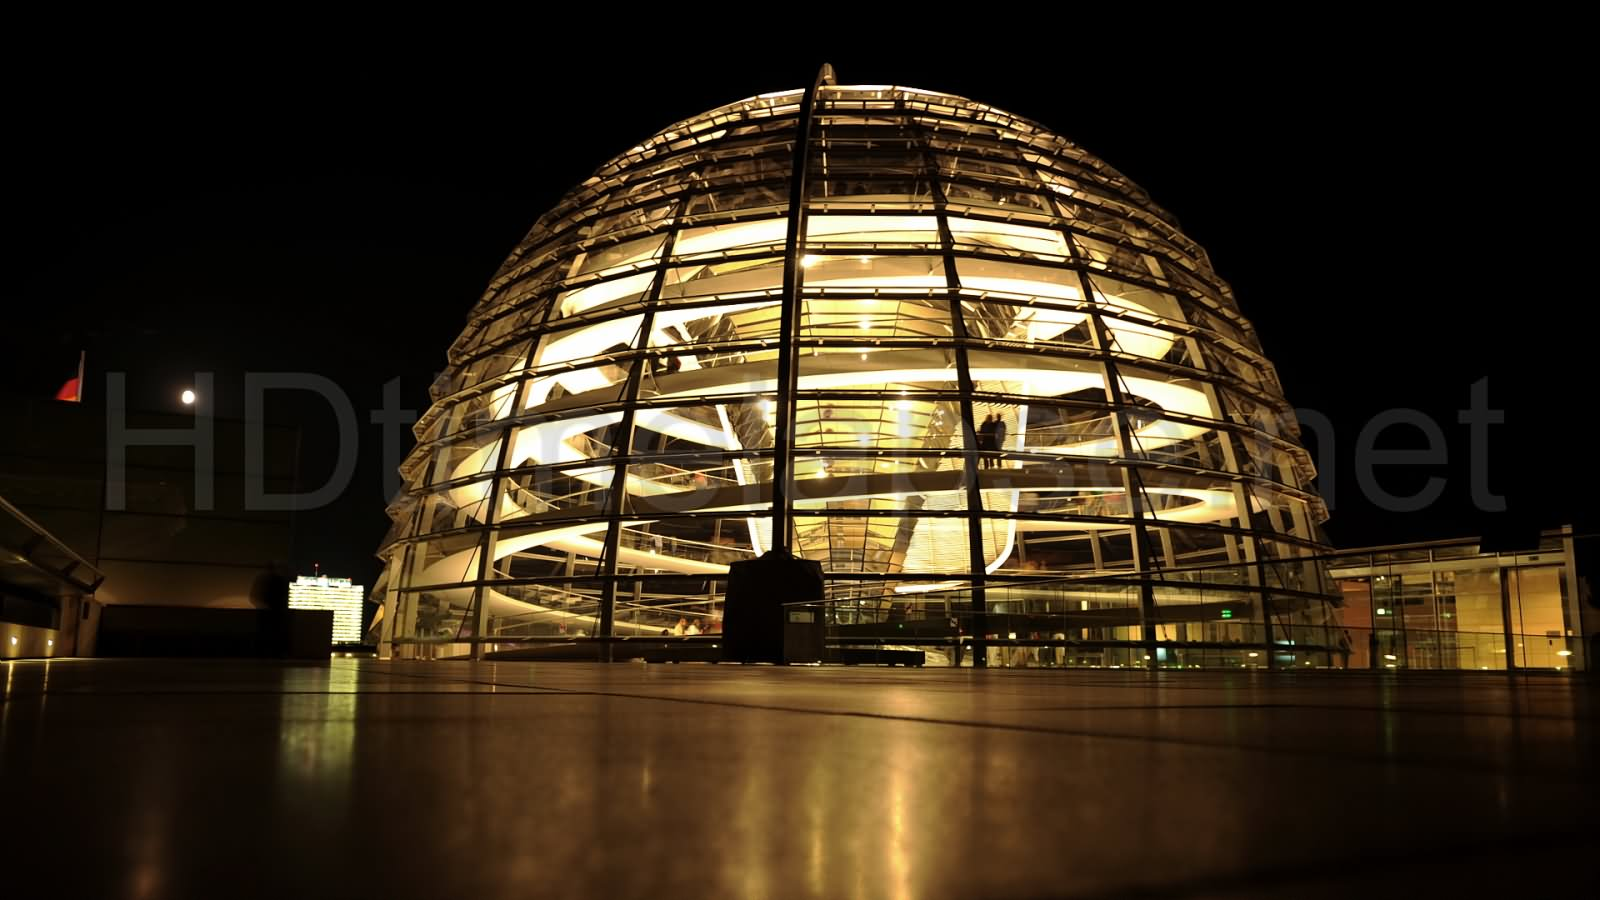 45 incredible night pictures of the reichstag building in berlin germany. Black Bedroom Furniture Sets. Home Design Ideas